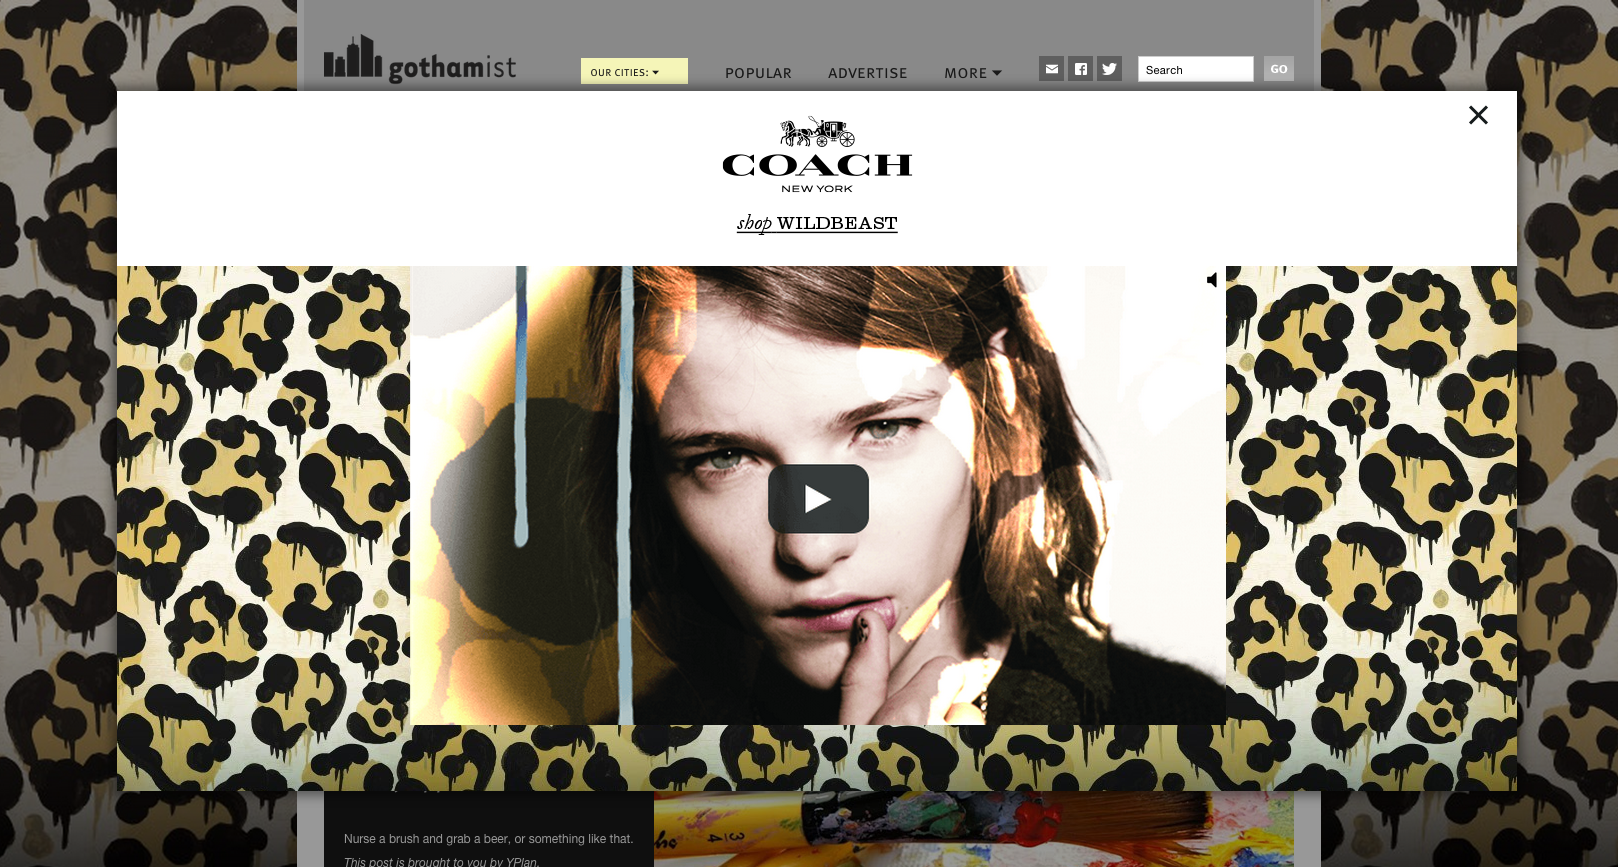 Coach_Wildbeast_Women_Overlay_NY.jpeg